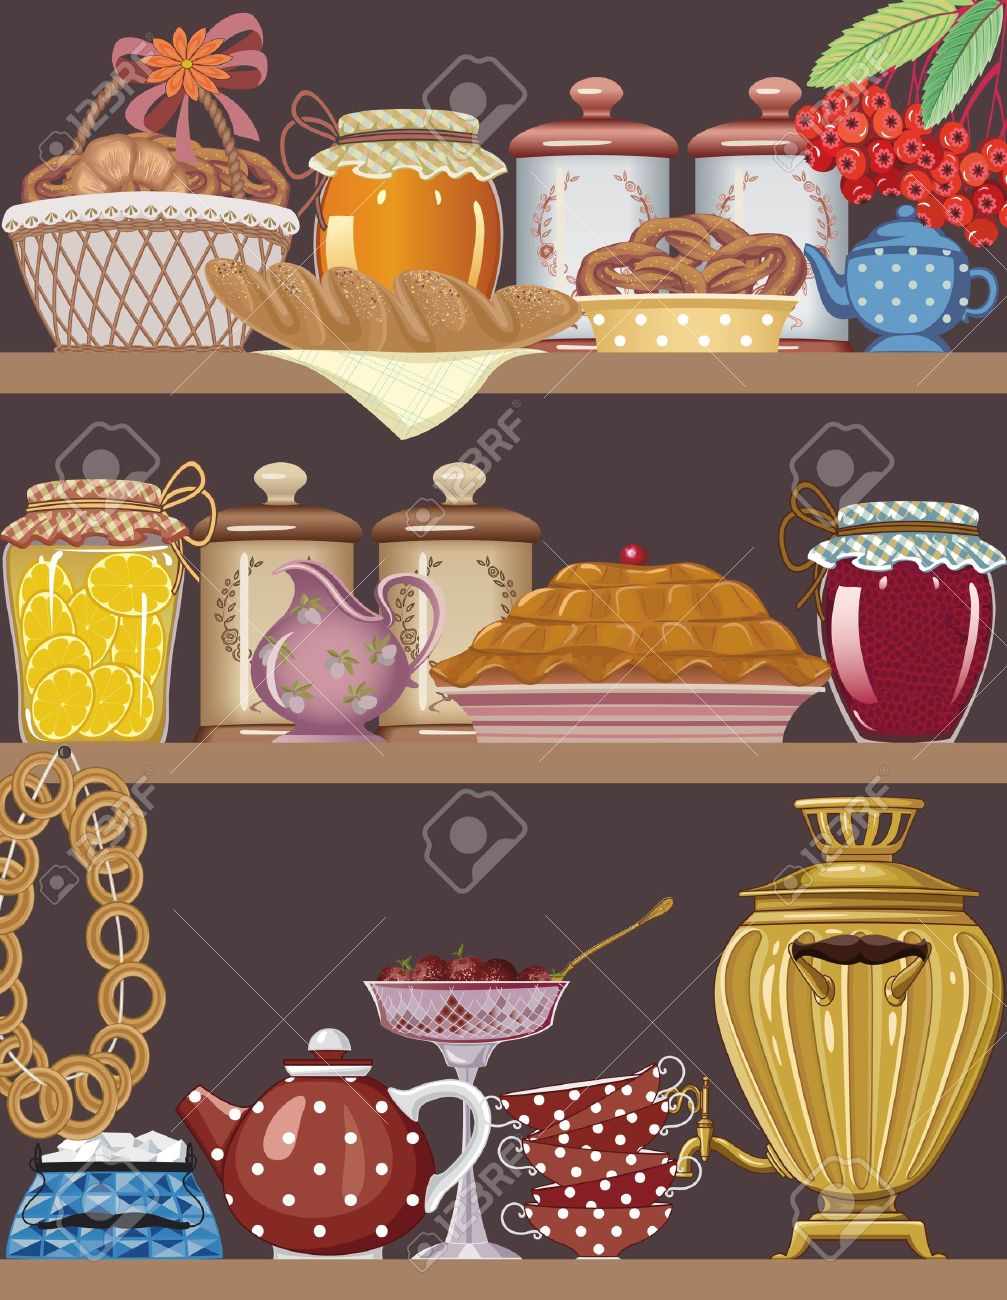 Shelves of a buffet with jars of homemade jams, bakery, teapot, teacups and gold russian samovar Stock Vector - 11860237